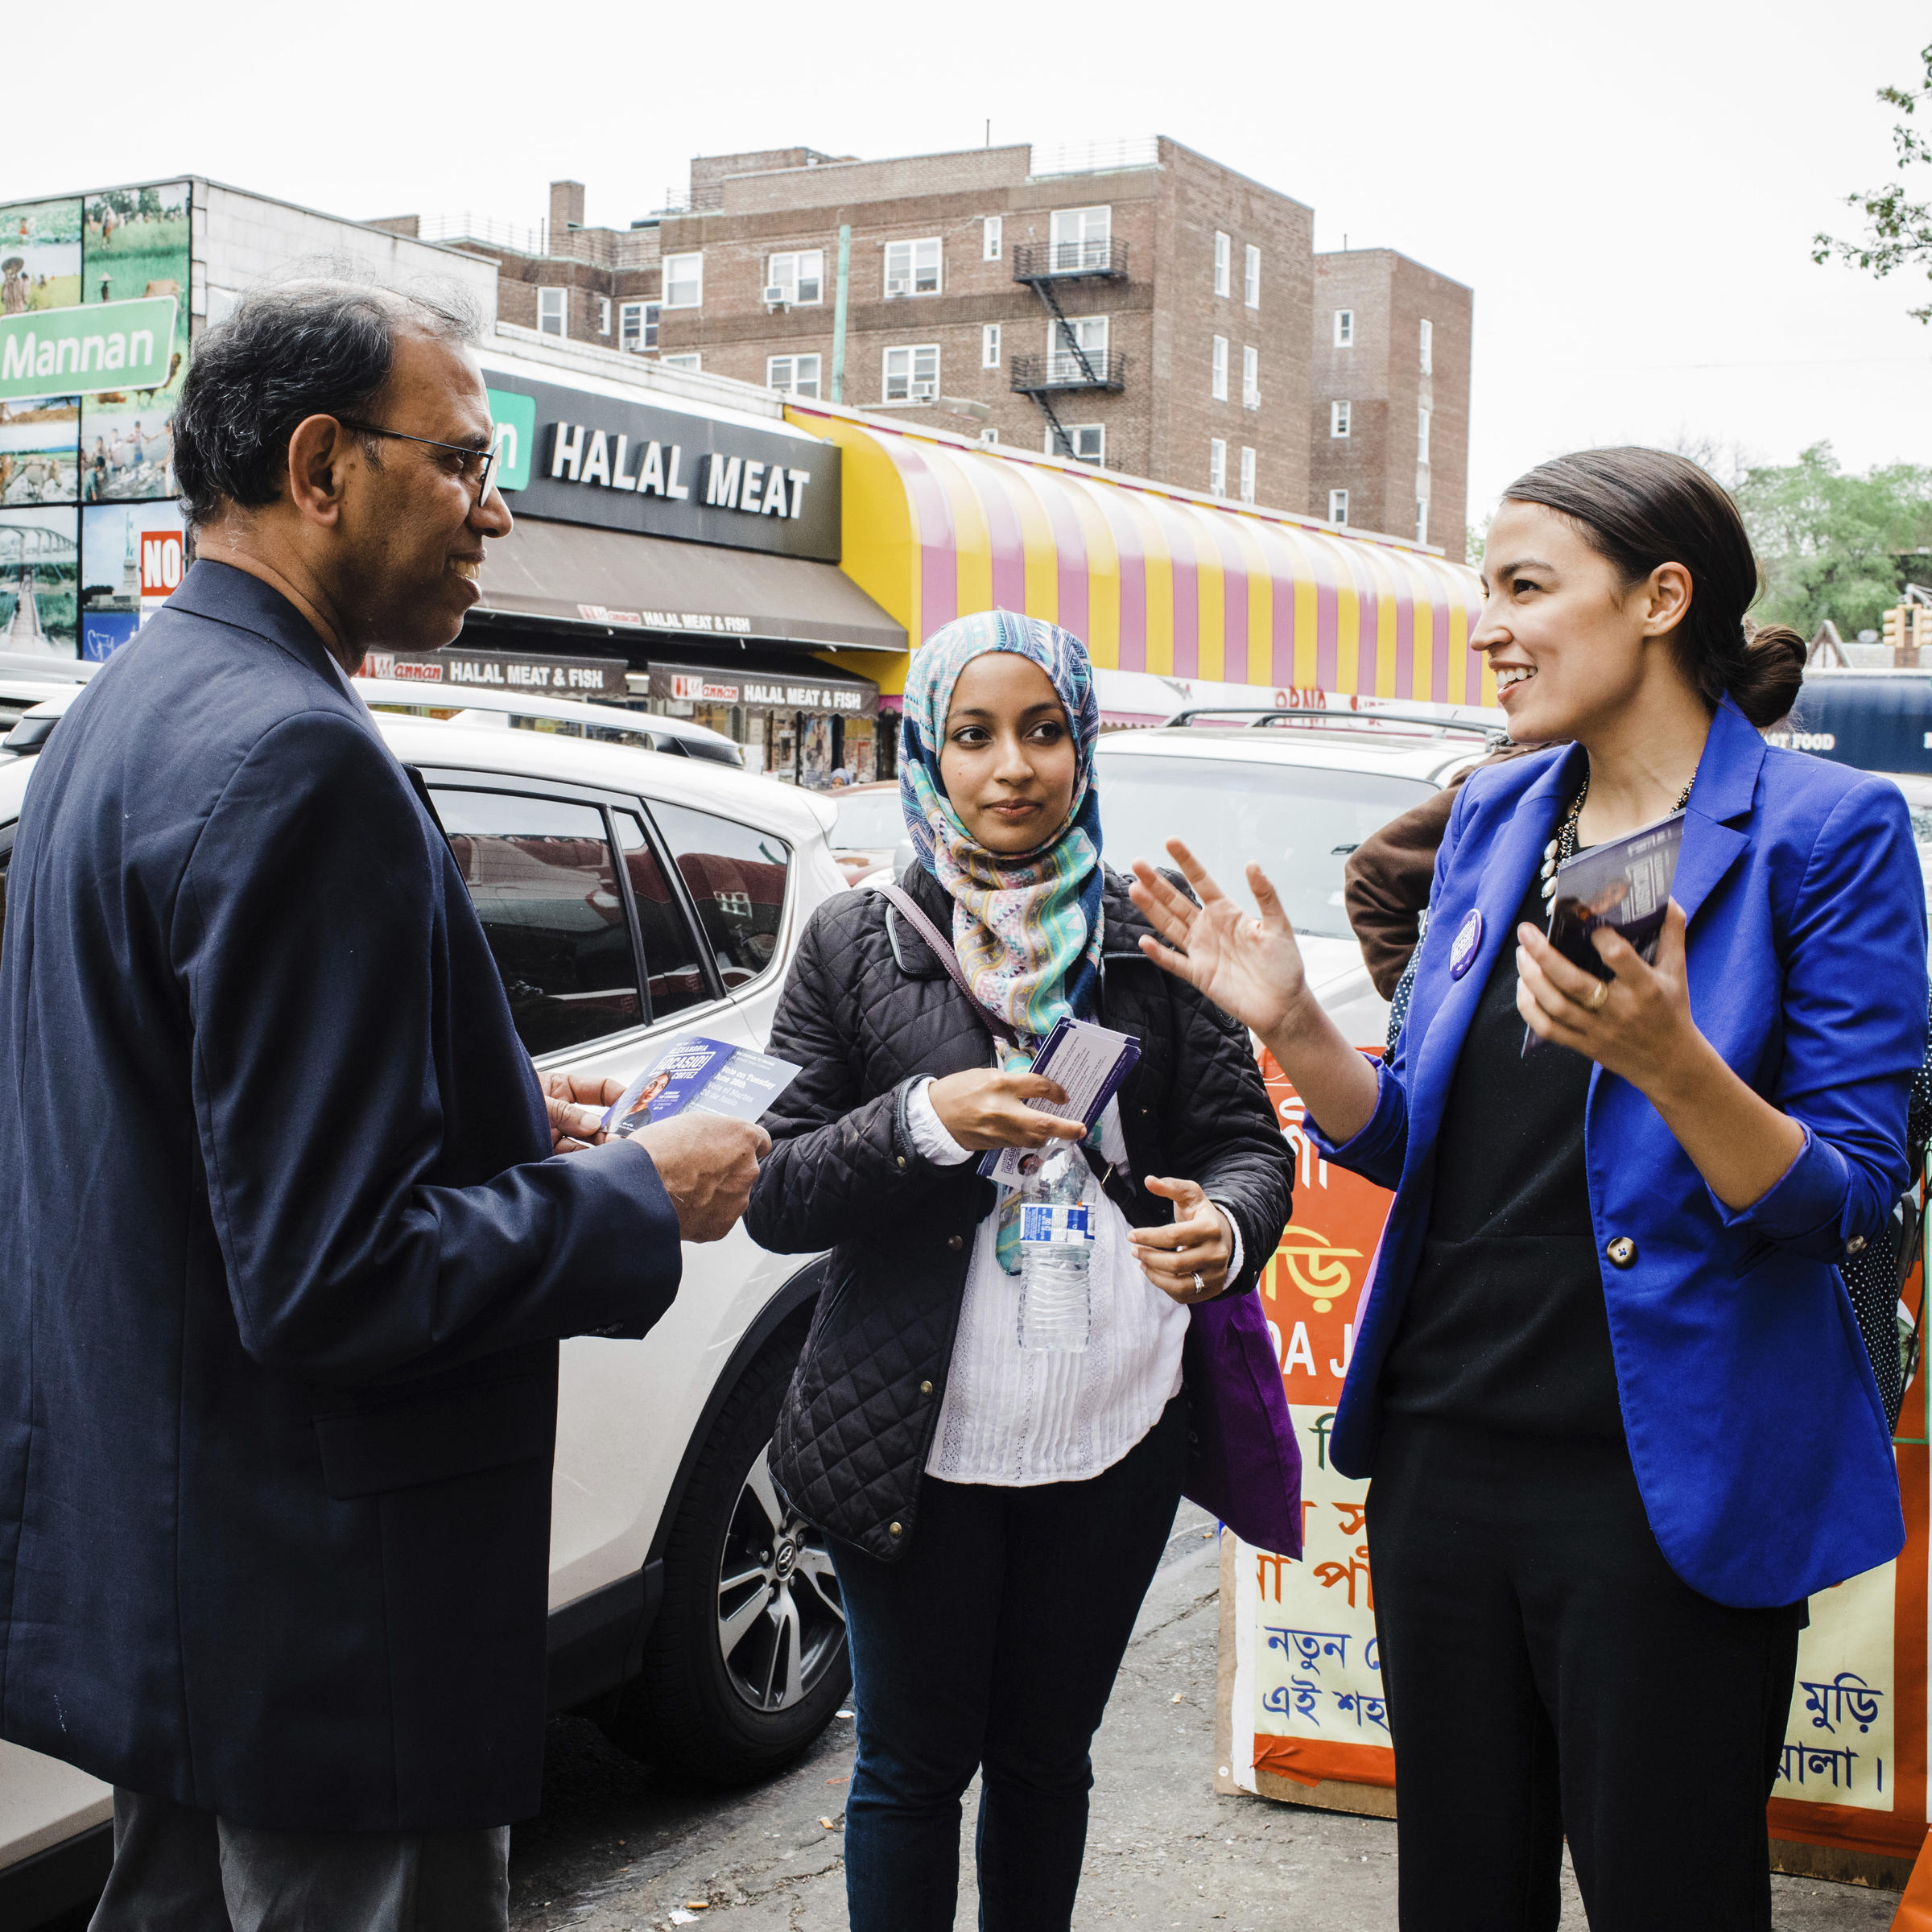 online store d95ce 9e711 A May 2016 photo provided by the Alexandria Ocasio-Cortez campaign shows  the candidate during a Bengali community outreach event in New York.